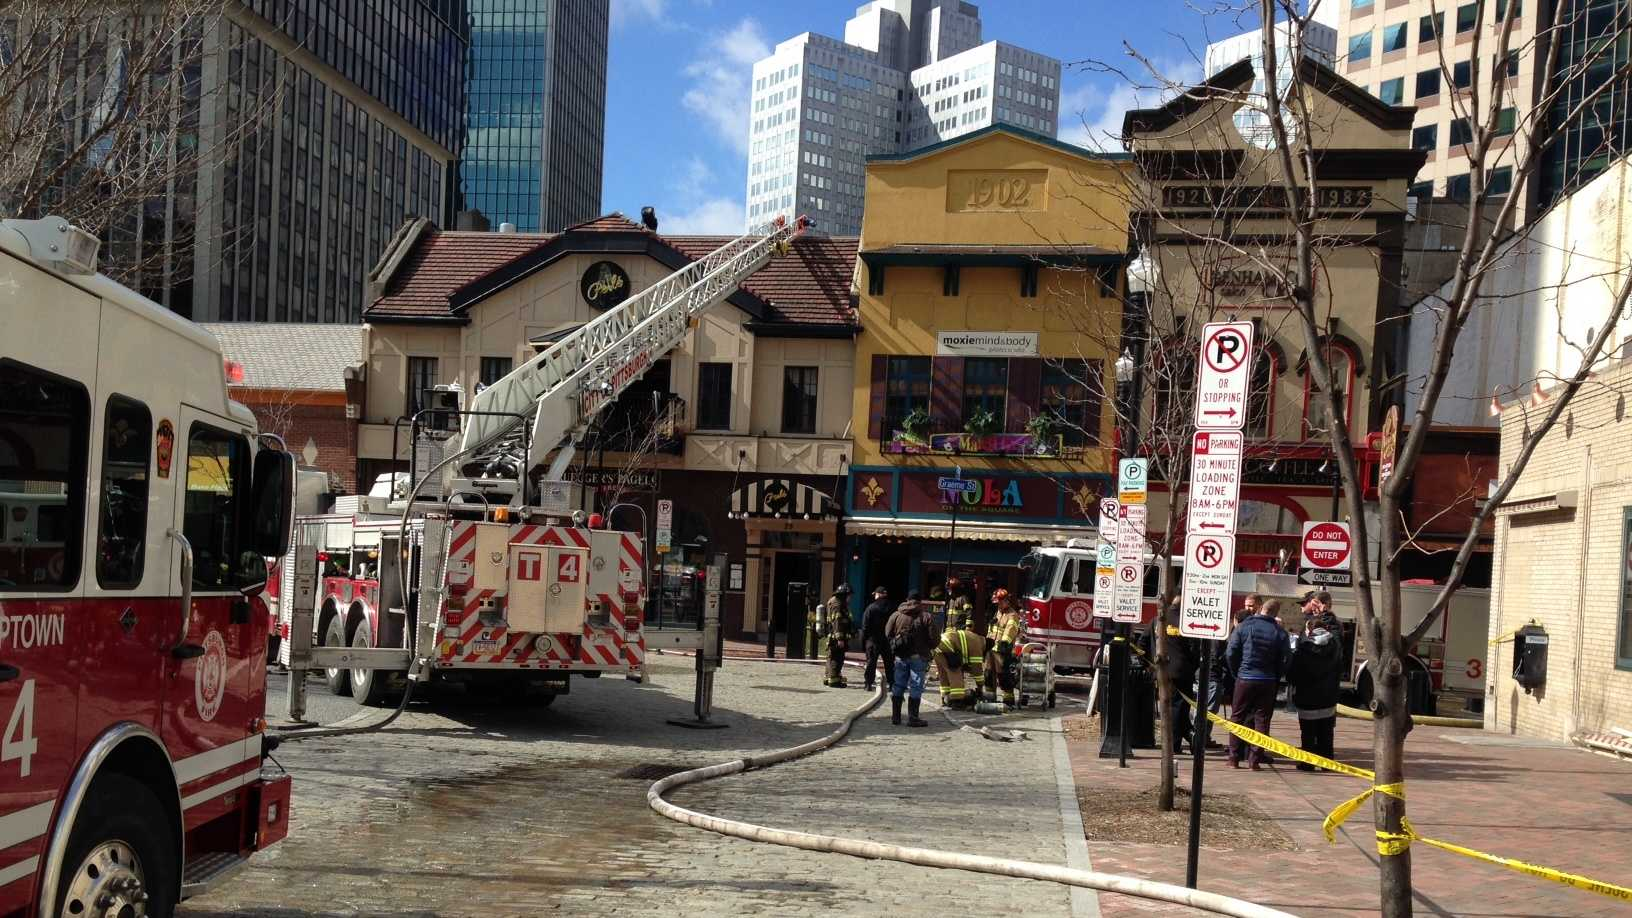 Market Square fire